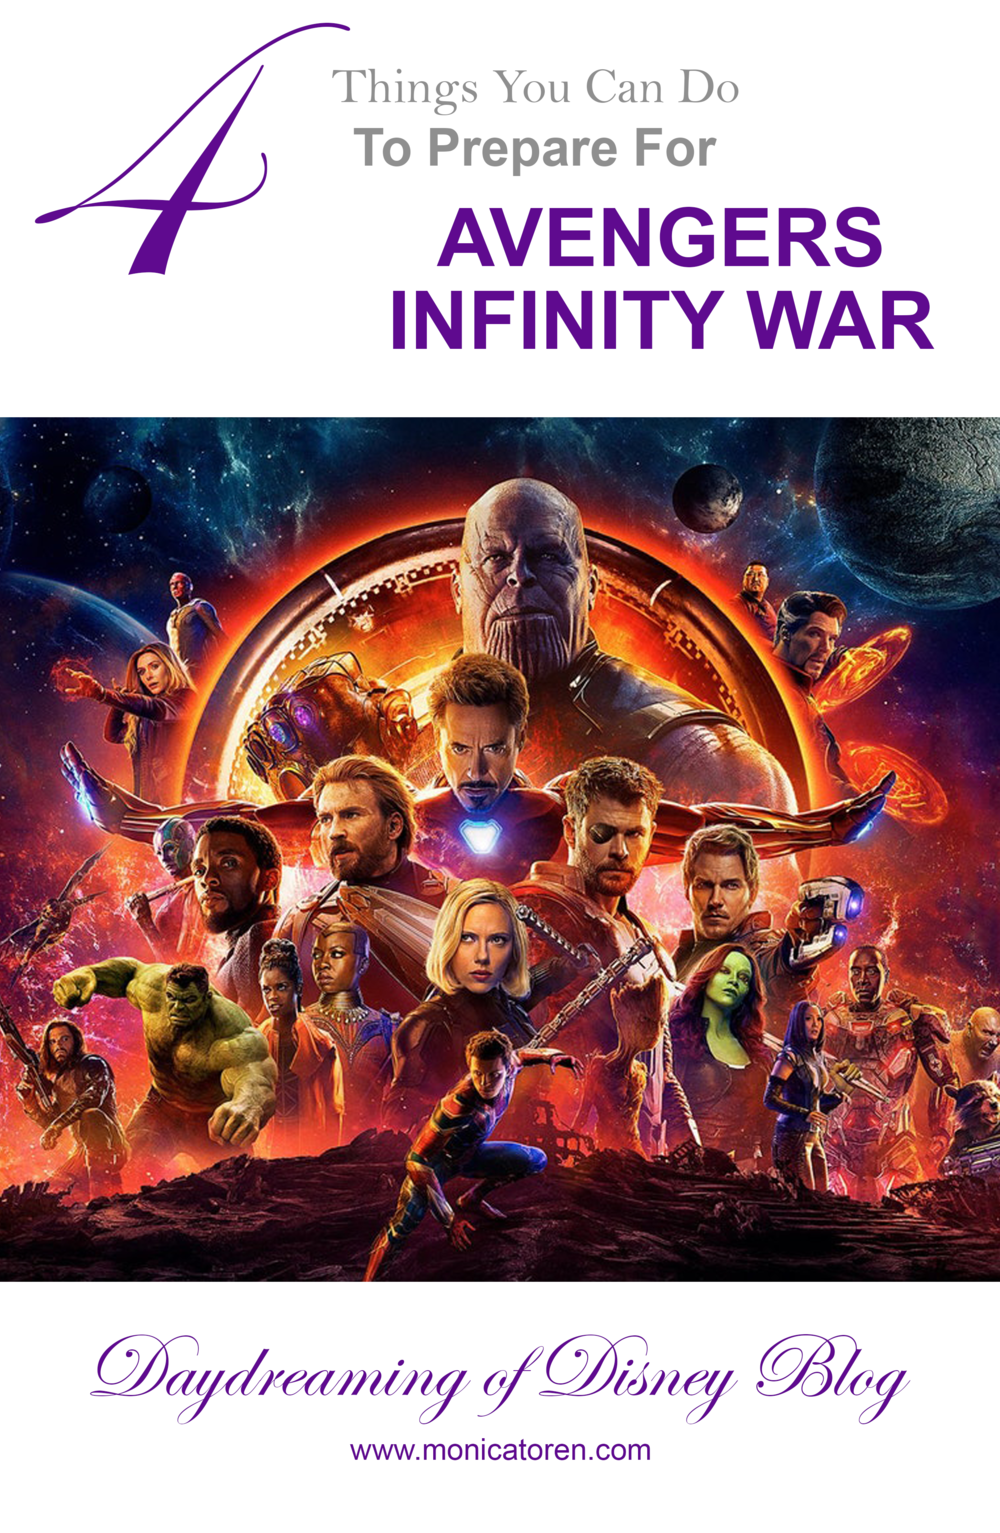 Daydreaming of Disney Blog - 4 Things You Can Do to Prepare for Avengers Infinity War - http://www.monicatoren.com #disney #disneymovie #disneymovies #marvel #marvelmovies #avengers #avengersinfinitywar